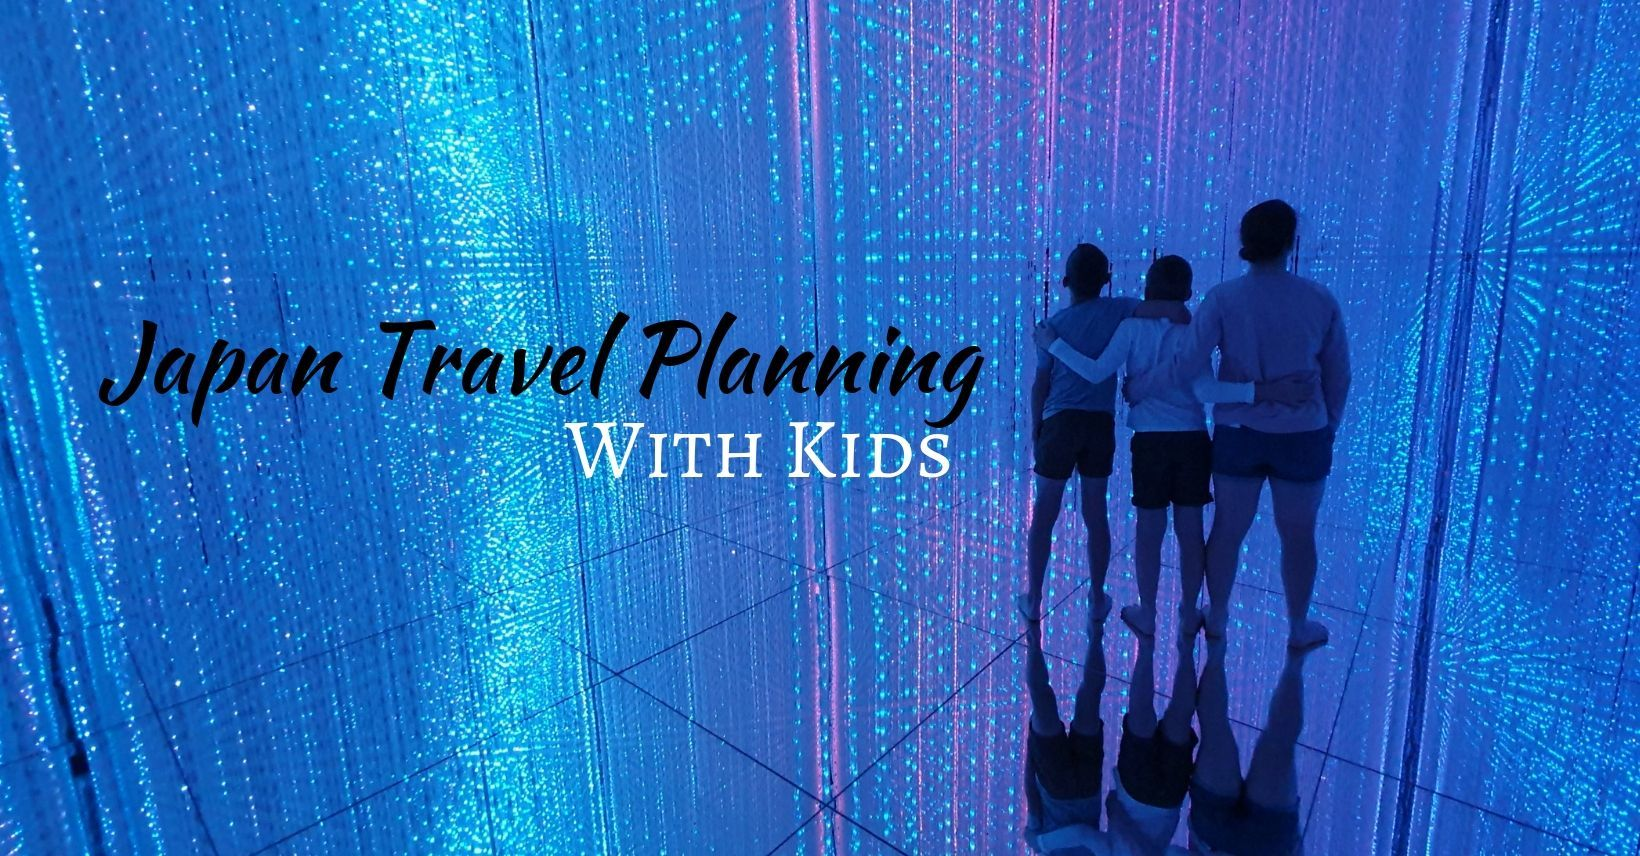 https://www.facebook.com/groups/JapanTravelPlanningWithKids/